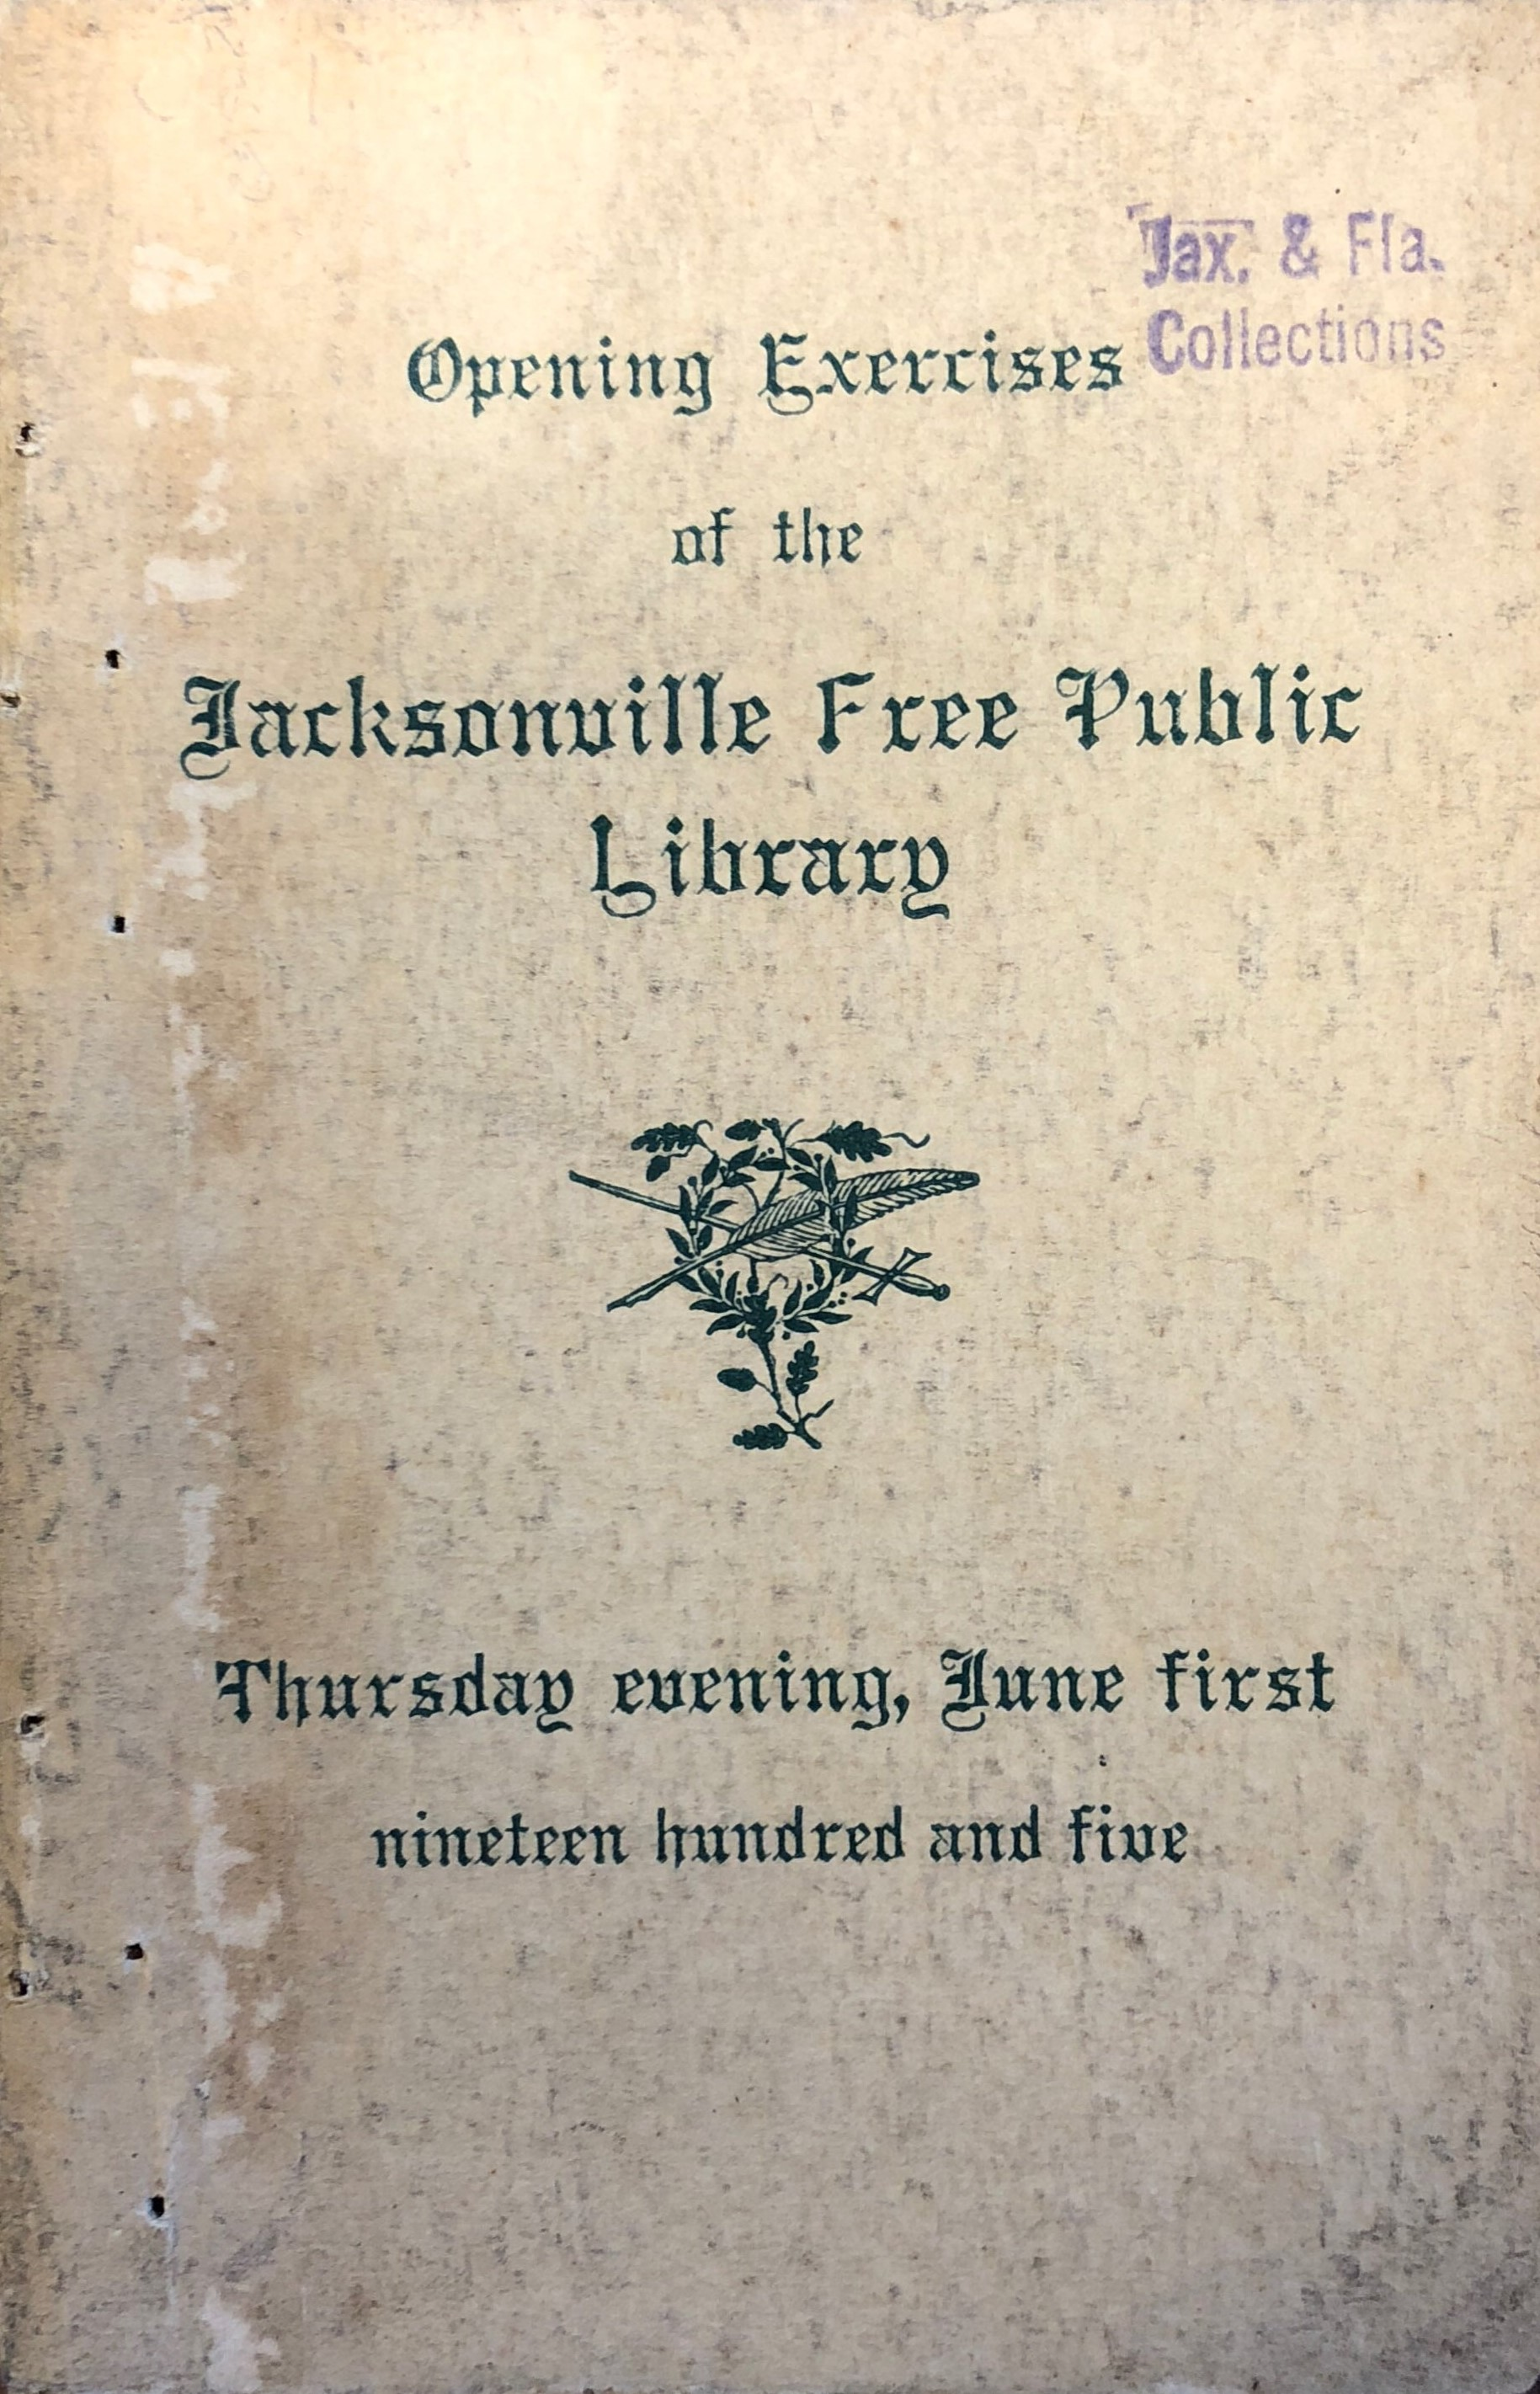 Opening of the Jacksonville Free Public Library